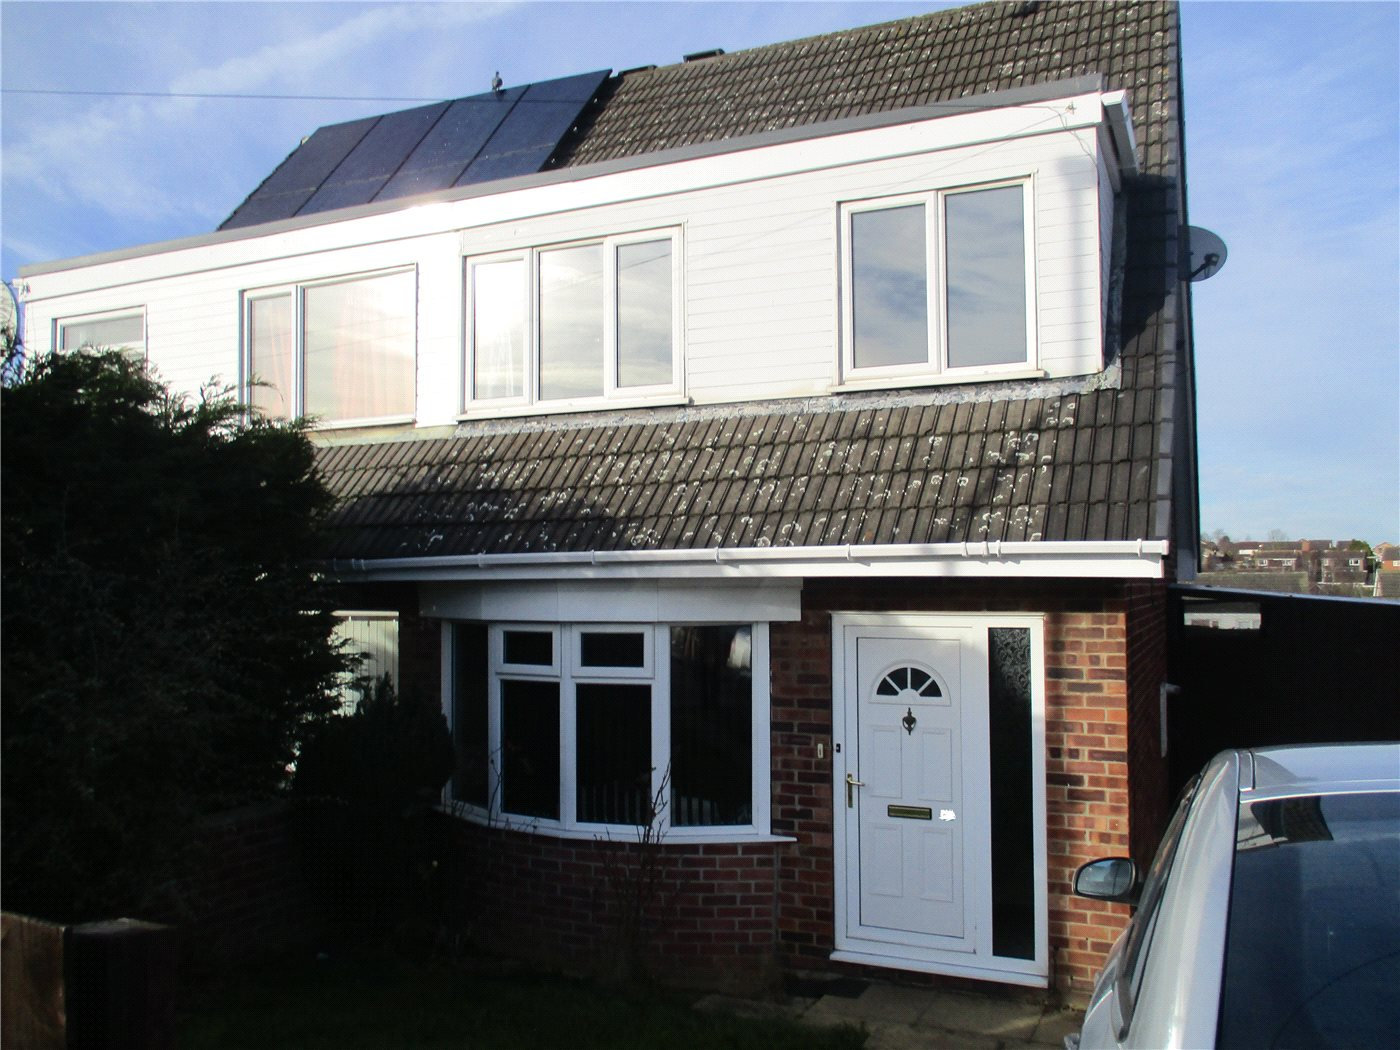 3 Bedrooms Semi Detached House for sale in Valley Road, Grantham, NG31